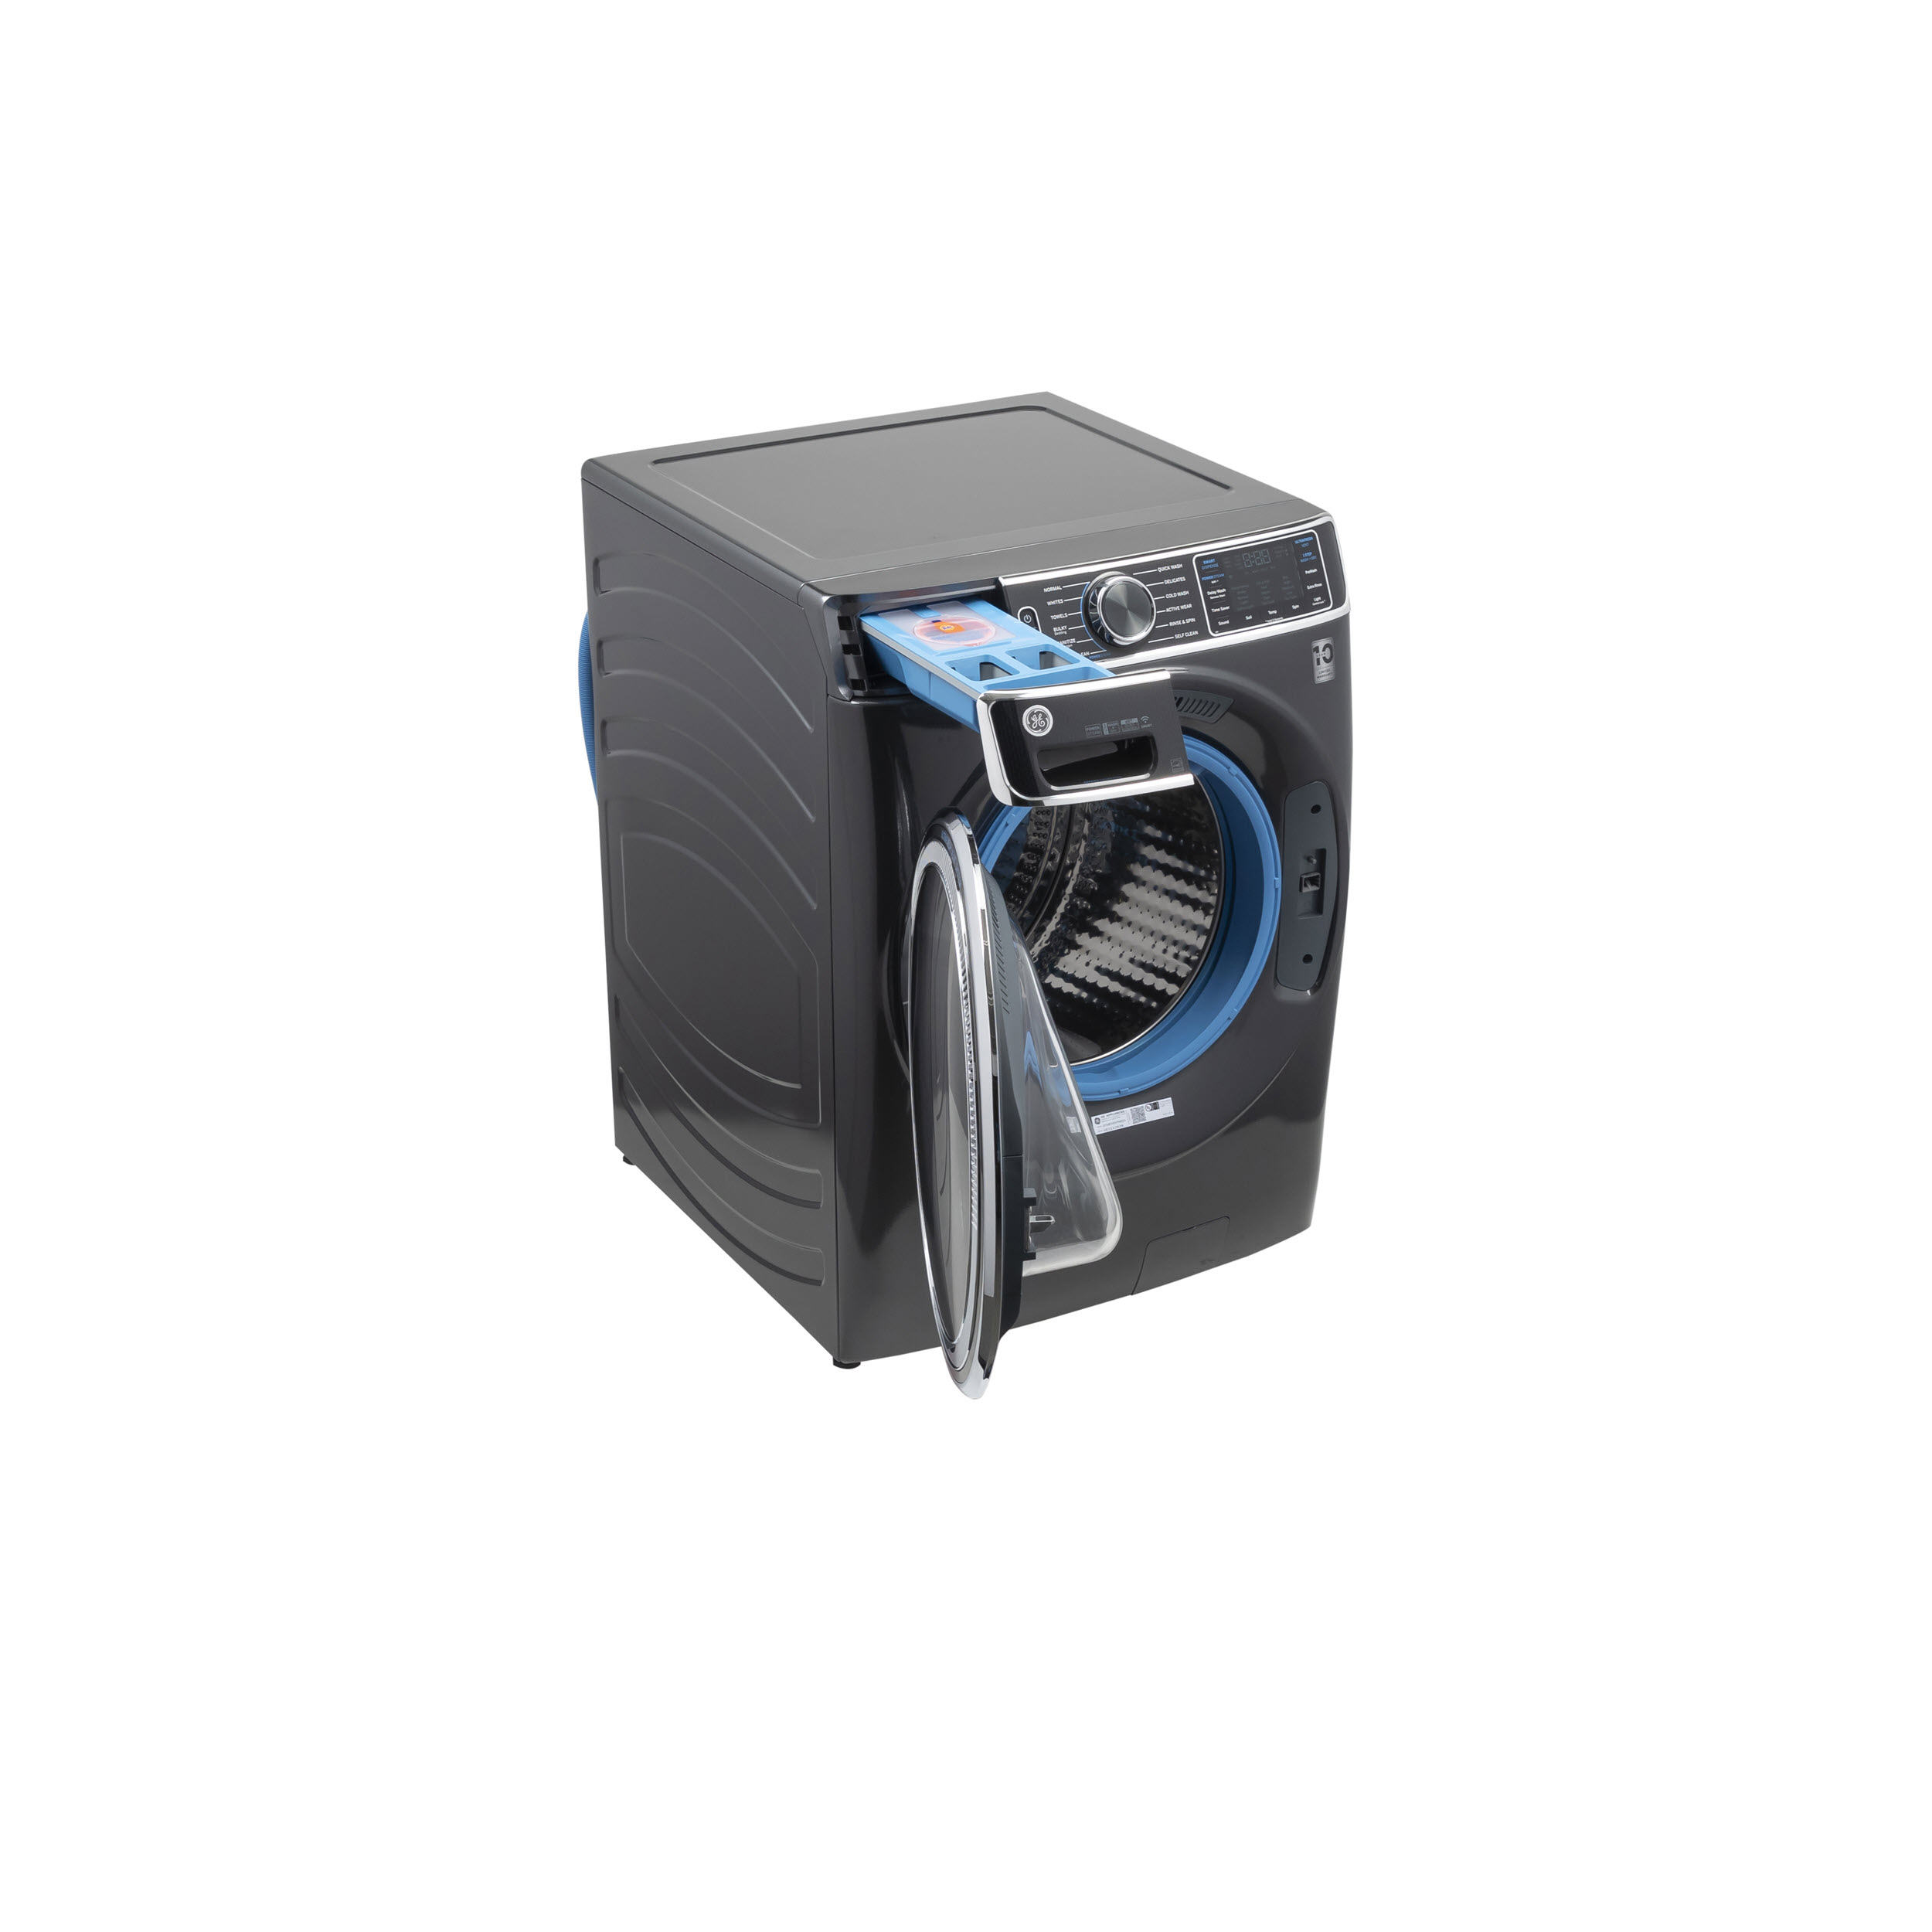 Model: GFW850SPNDG | GE GE® 5.0 cu. ft. Capacity Smart Front Load ENERGY STAR® Steam Washer with SmartDispense™ UltraFresh Vent System with OdorBlock™ and Sanitize + Allergen